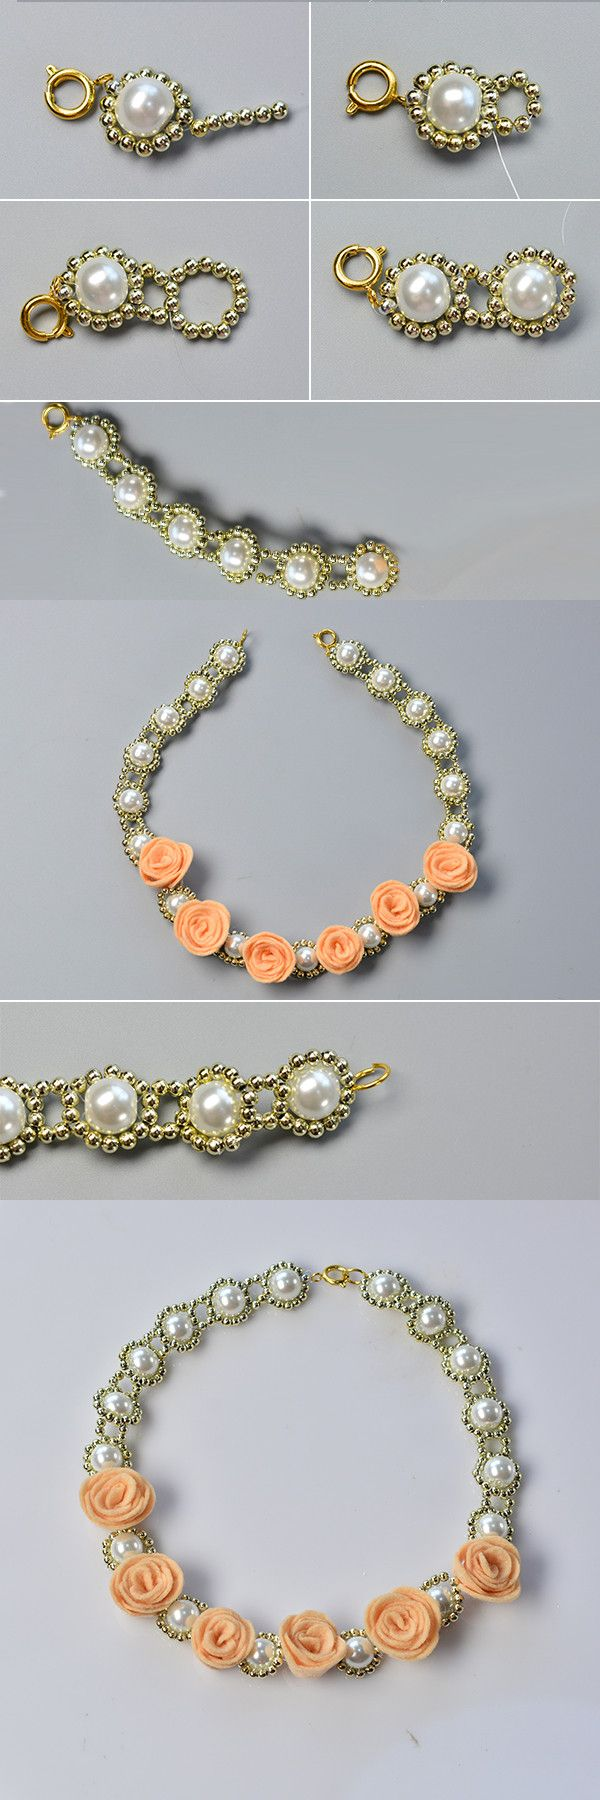 Like the flower pearl necklace?The tutorial will be published by LC.Pandahall.com soon.